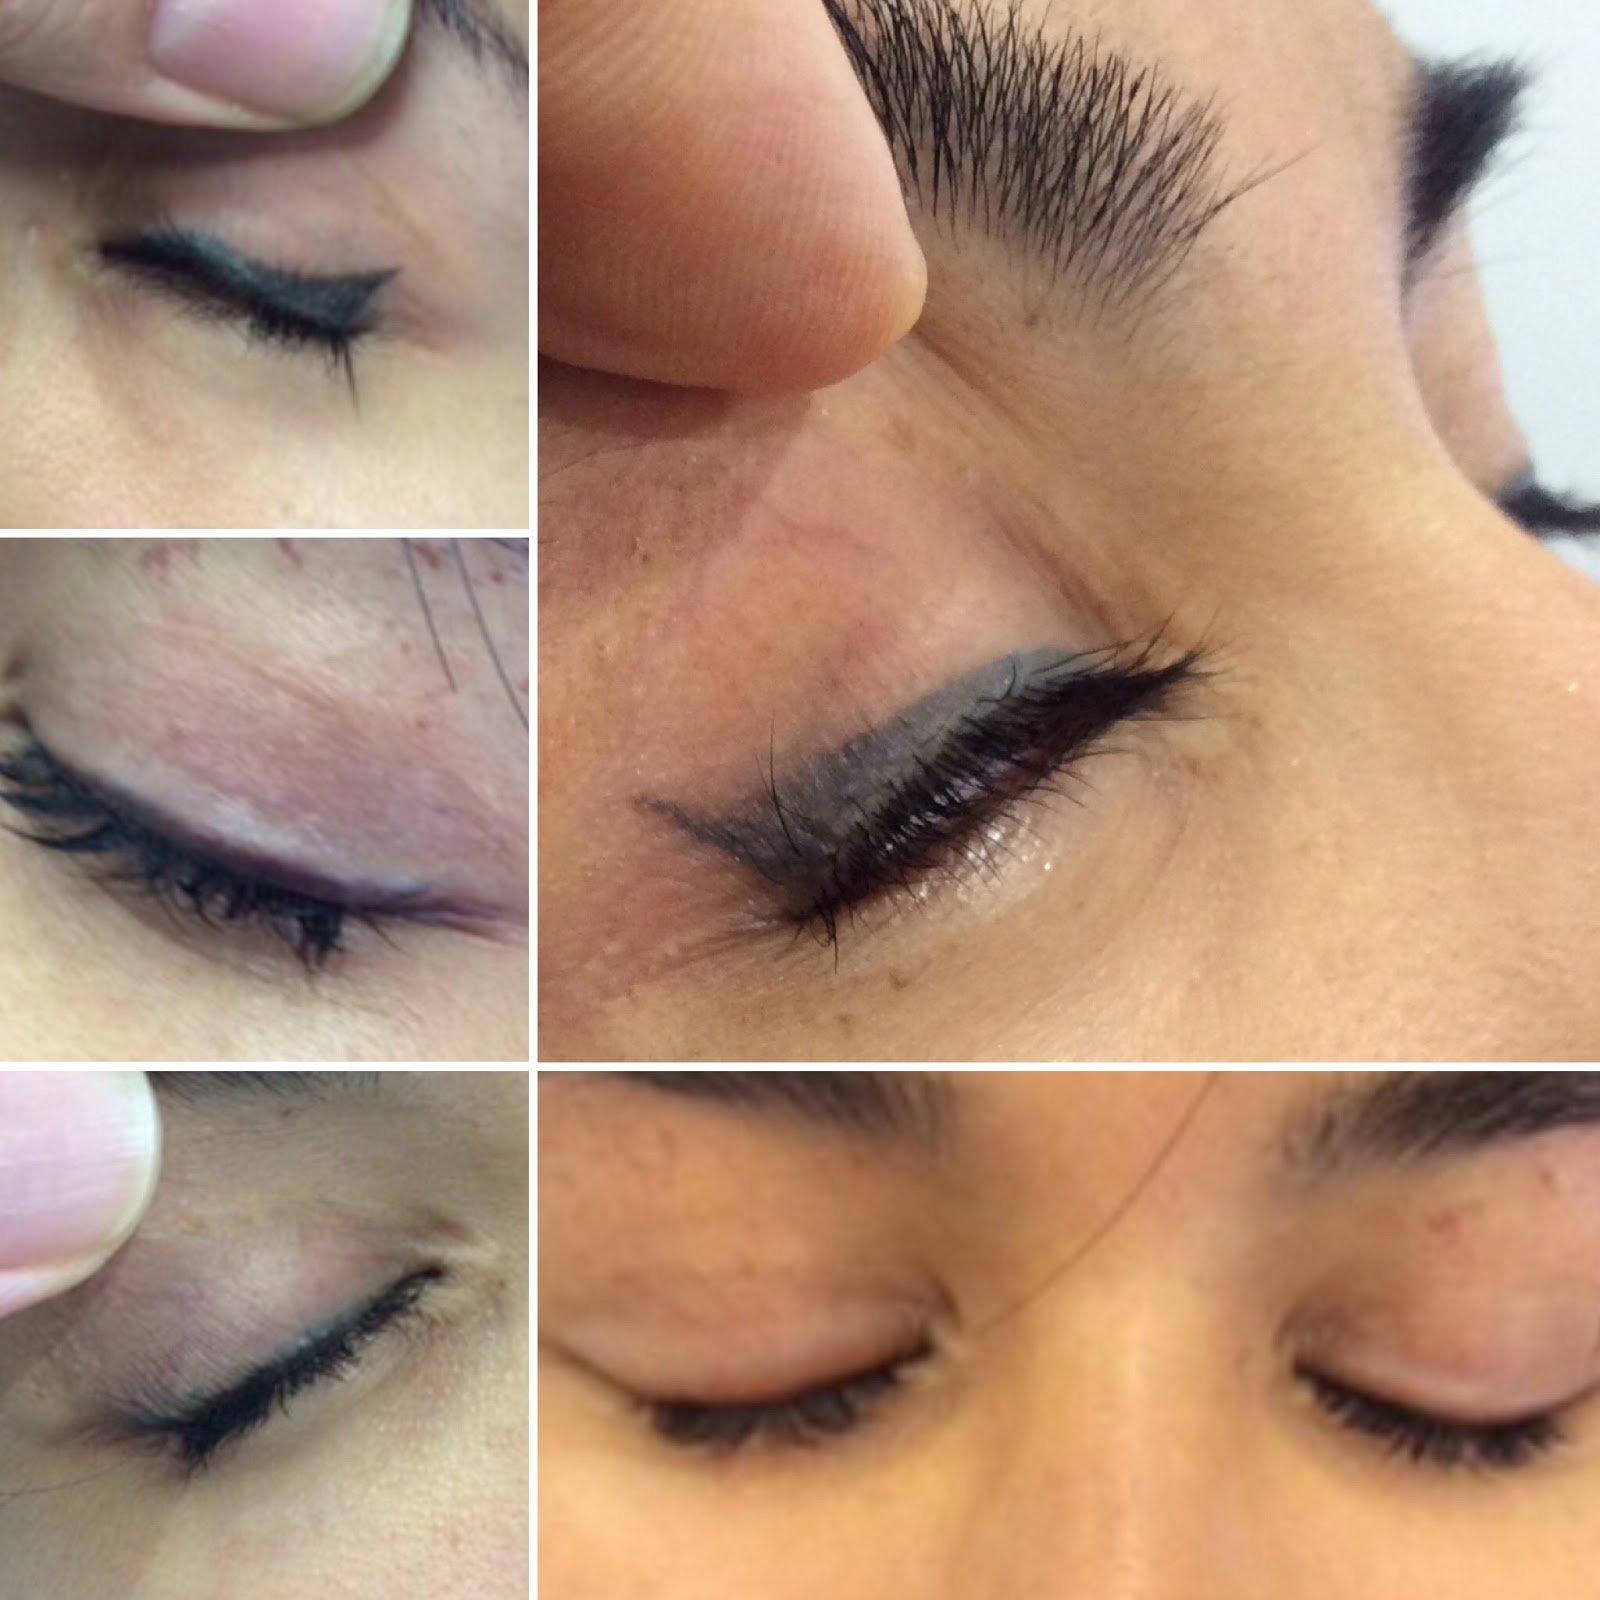 Eyeliner Tattoo Removal Process and Success